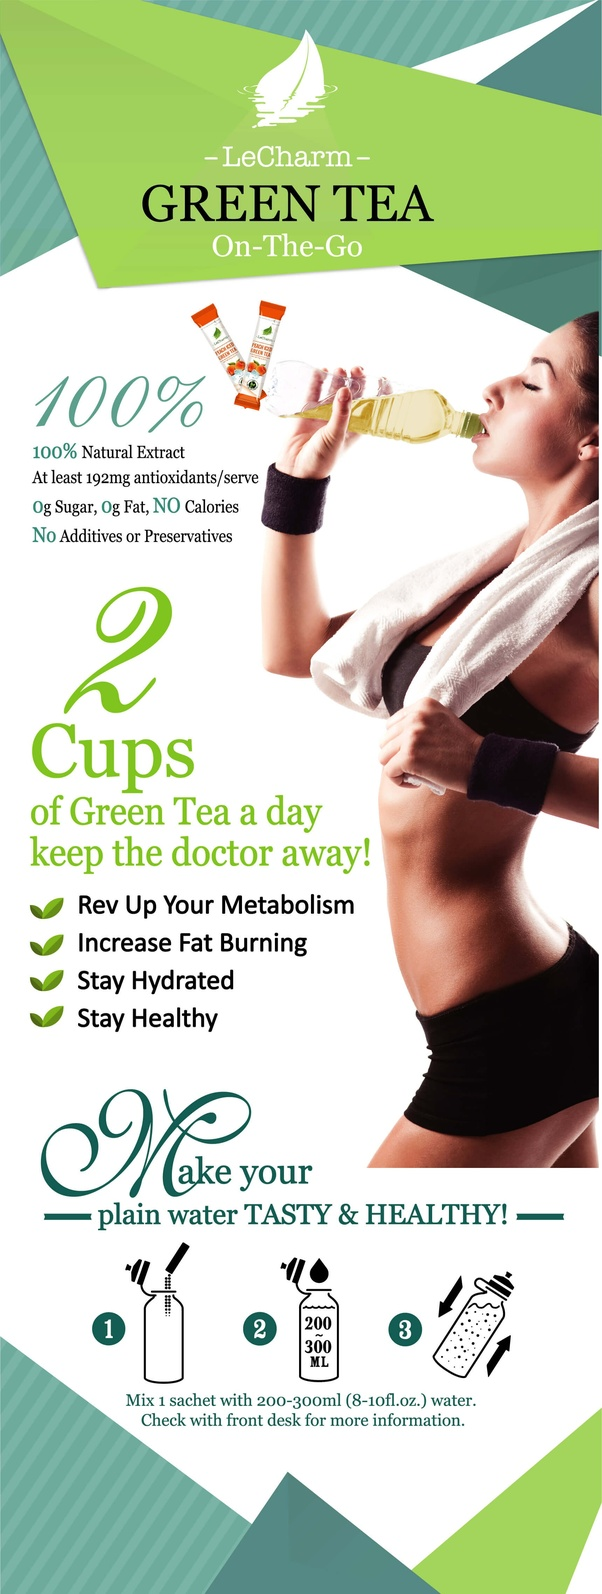 what are some benefits of daily consumption of green tea